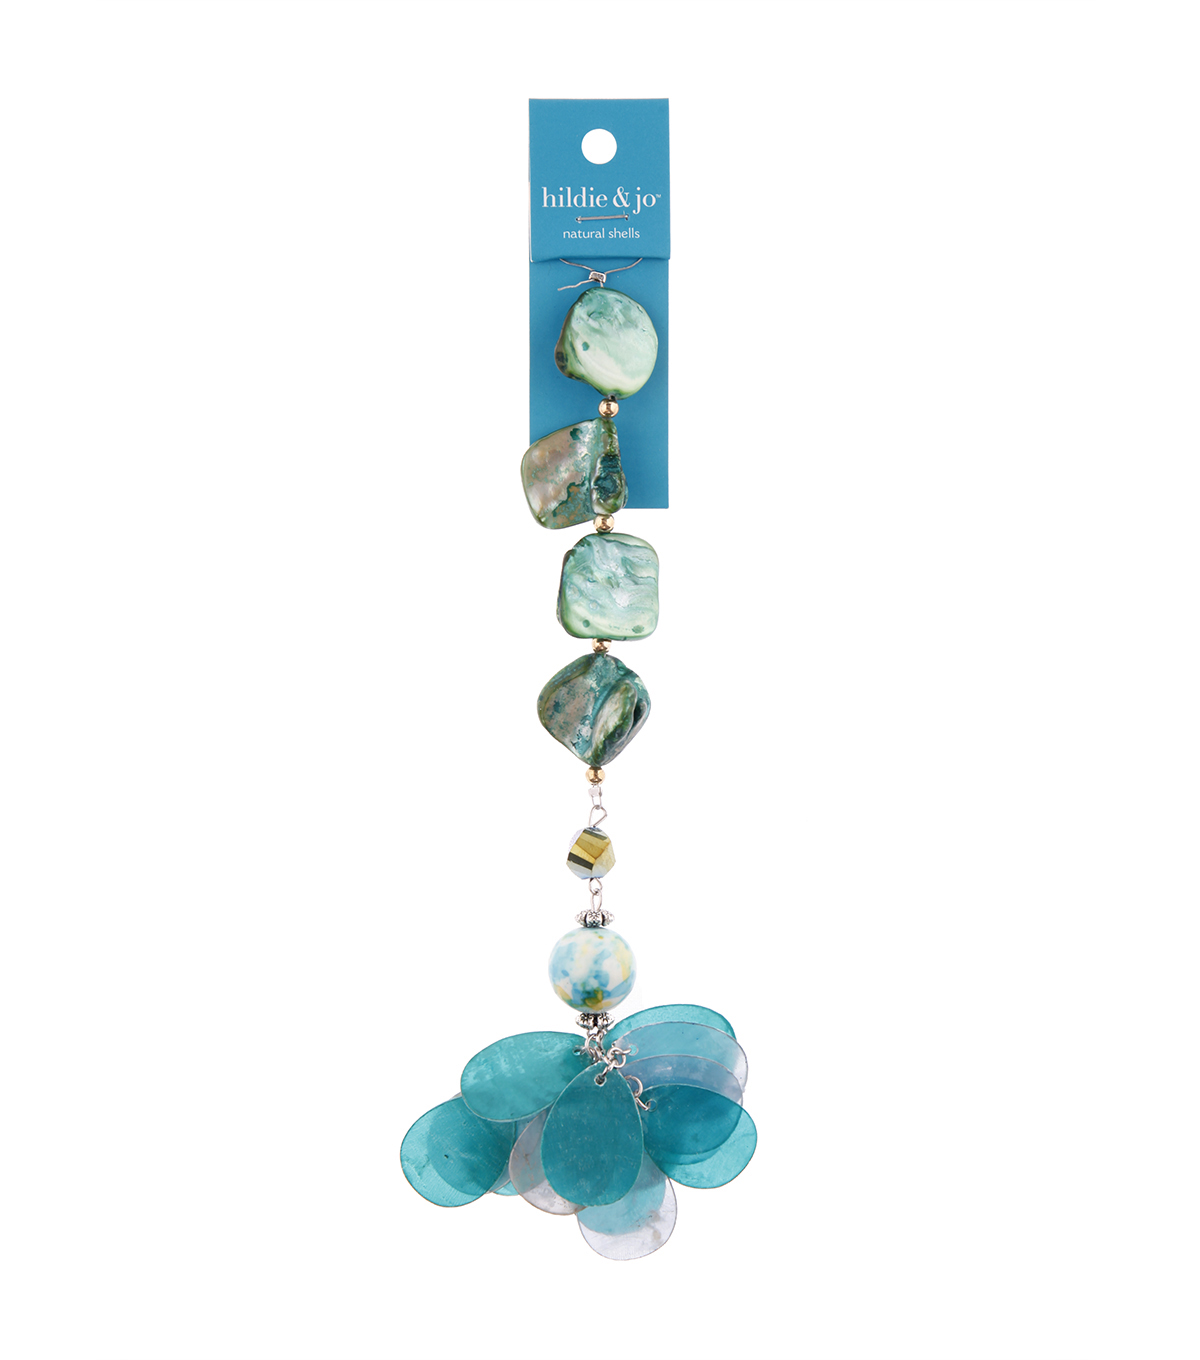 hildie & jo 7\u0022 Shell Strung Beads-Blue & Green